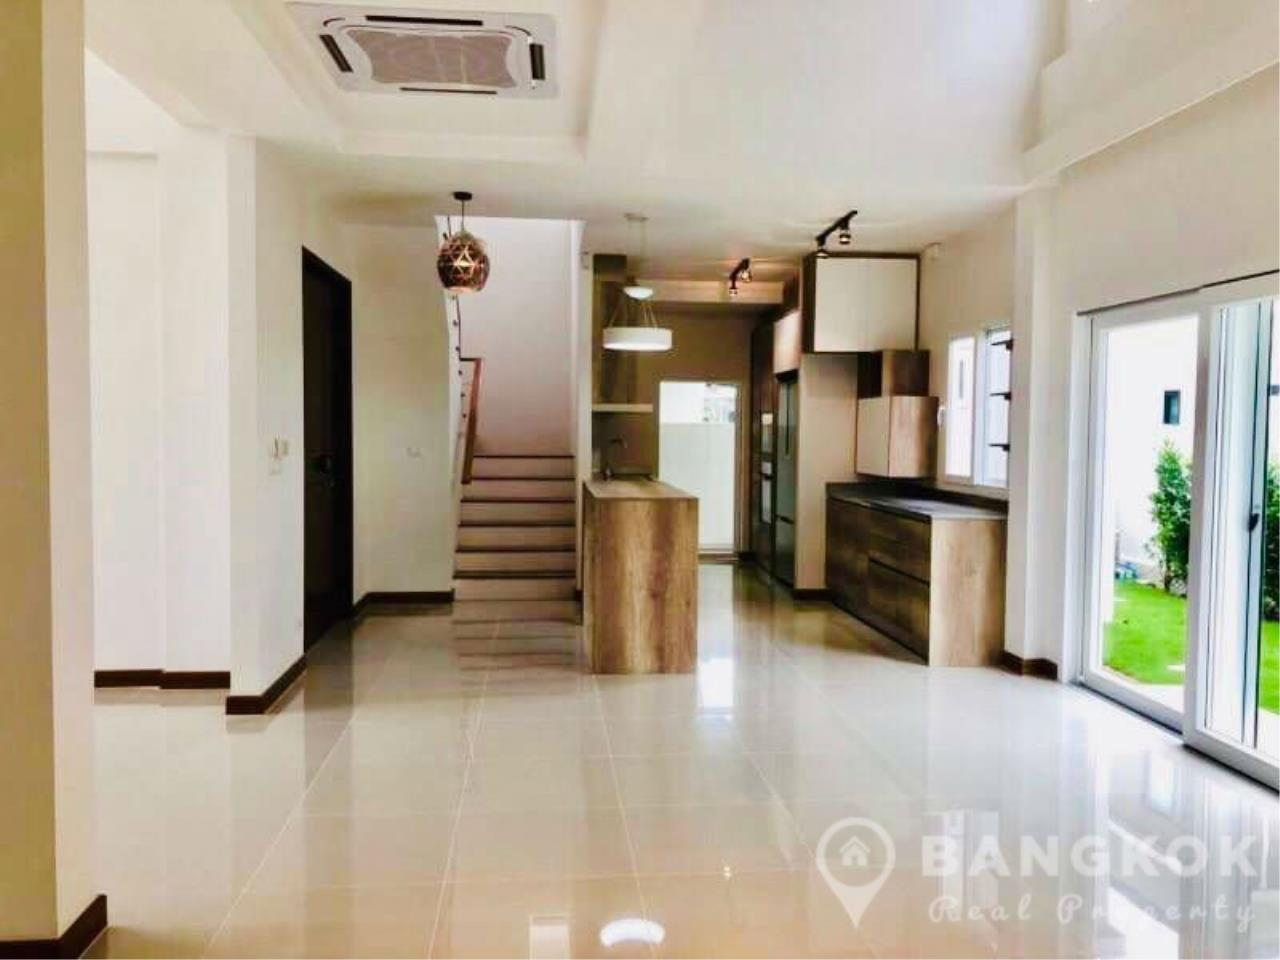 Bangkok Real Property Agency's Brand New Detached 4 Bed 4 Bath House just off Srinakarin Road 2